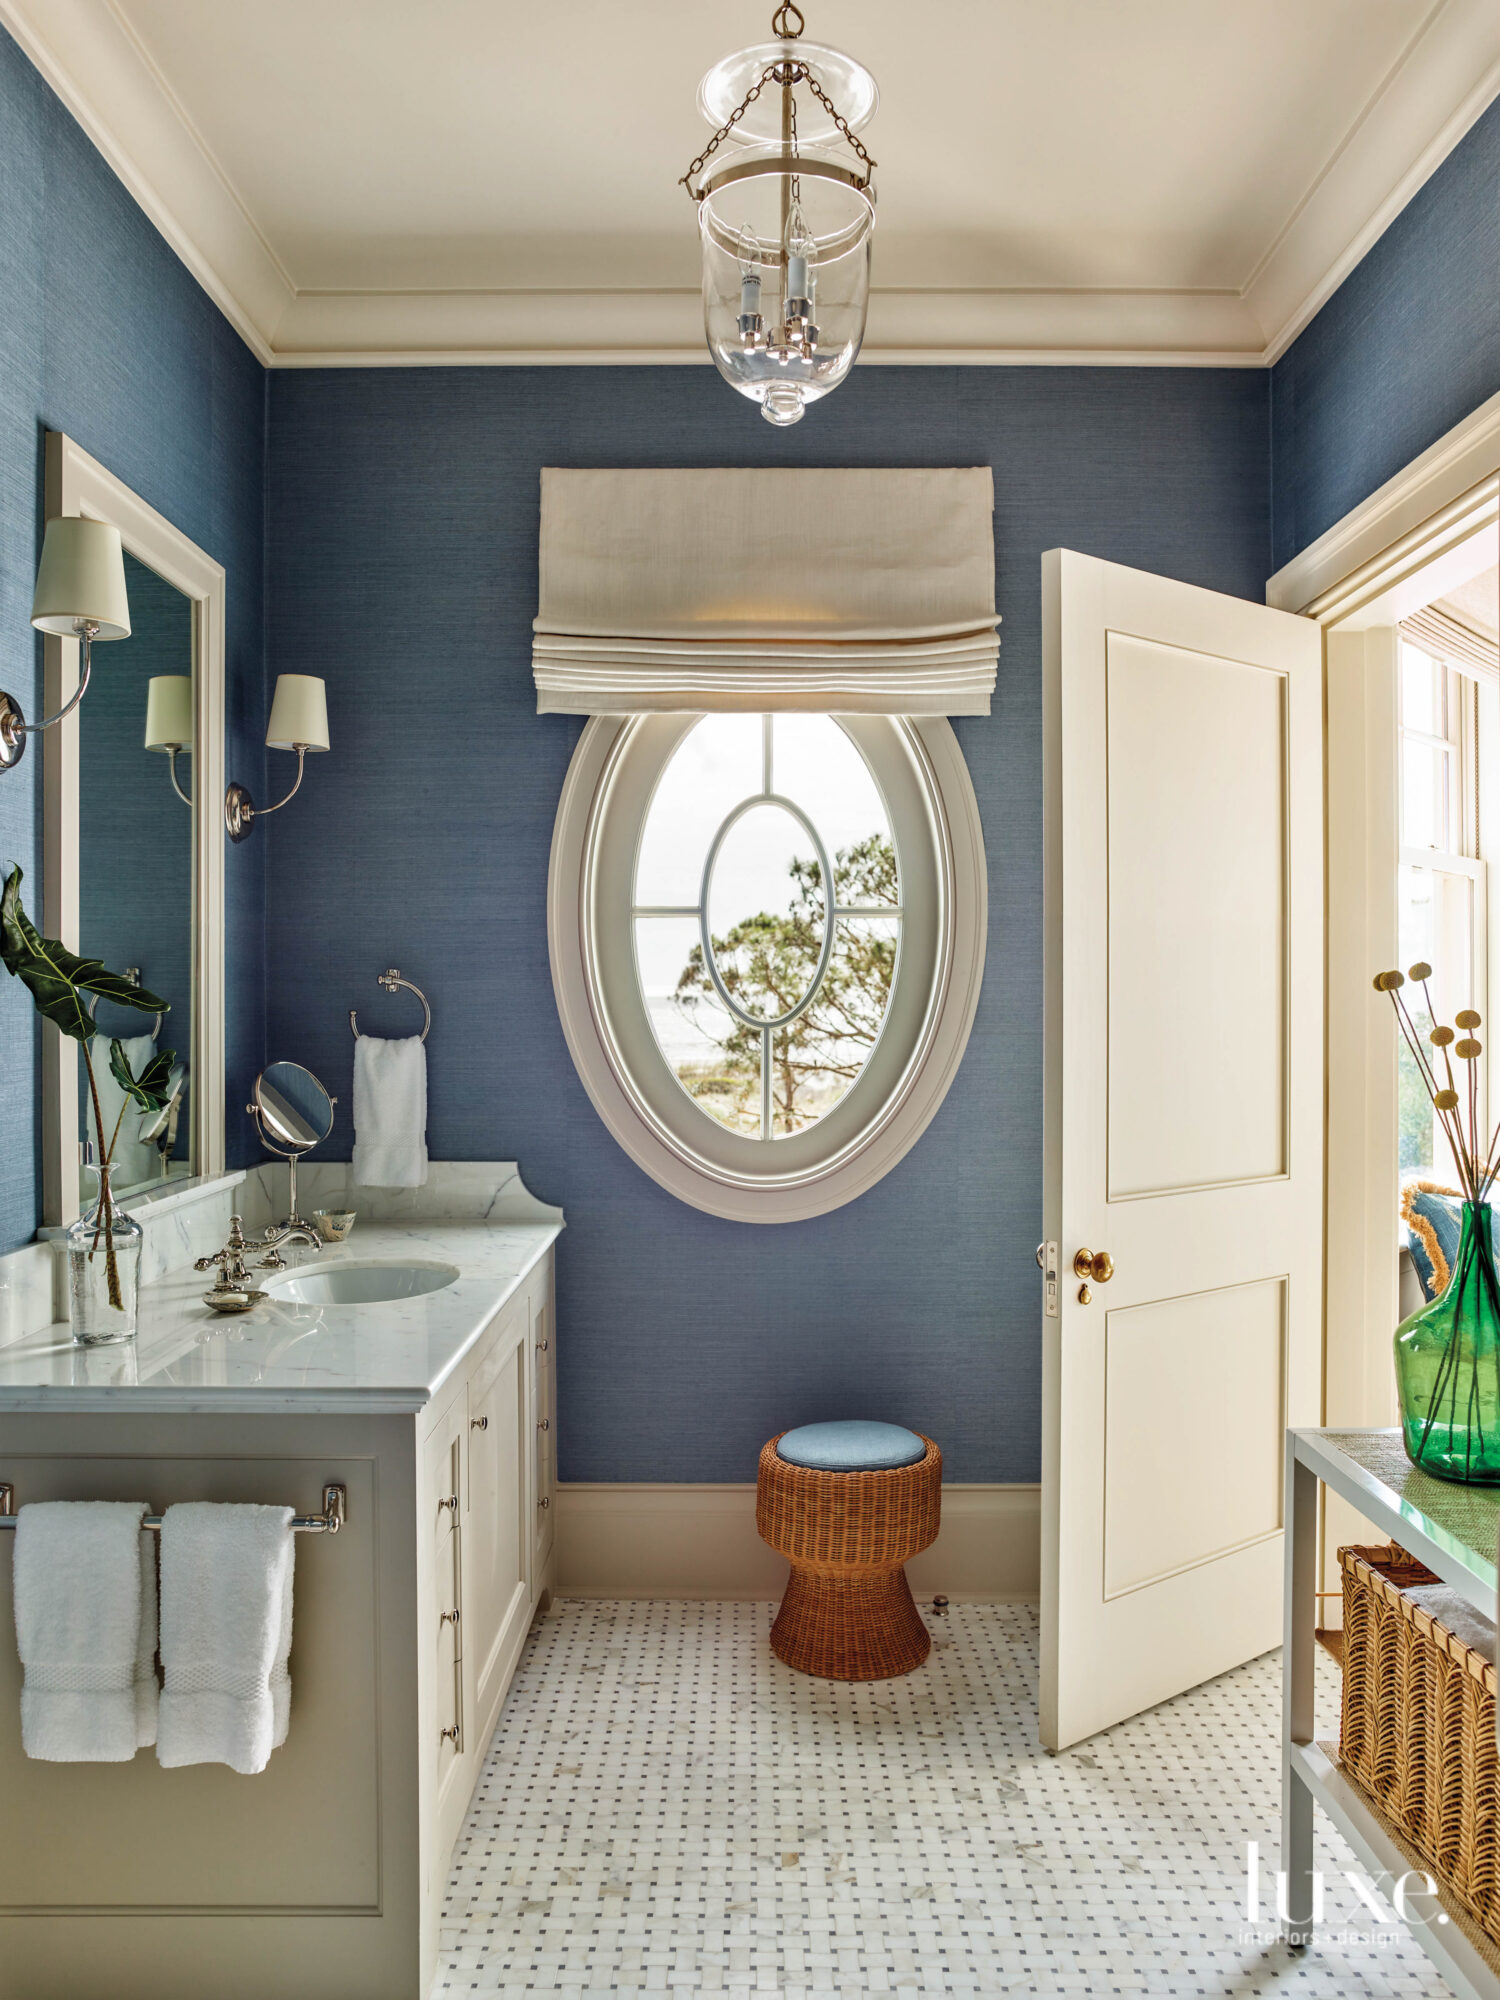 Bathroom with oval window and...